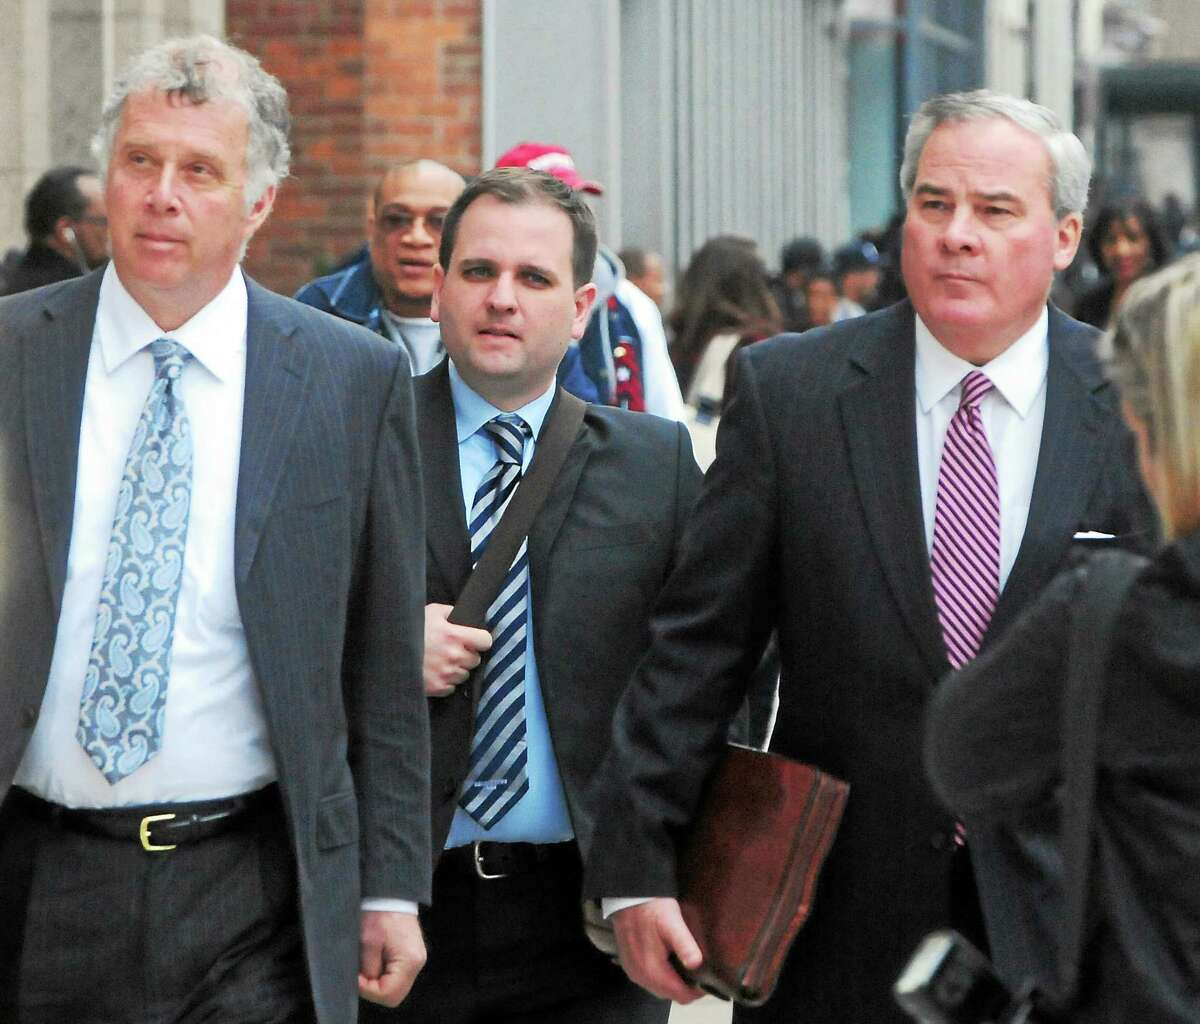 Former Connecticut Governor John G. Rowland, right, arrives with his attorney Reid Weingarten, far left, at the Federal Courthouse in New Haven Friday afternoon, April 11, 2014.